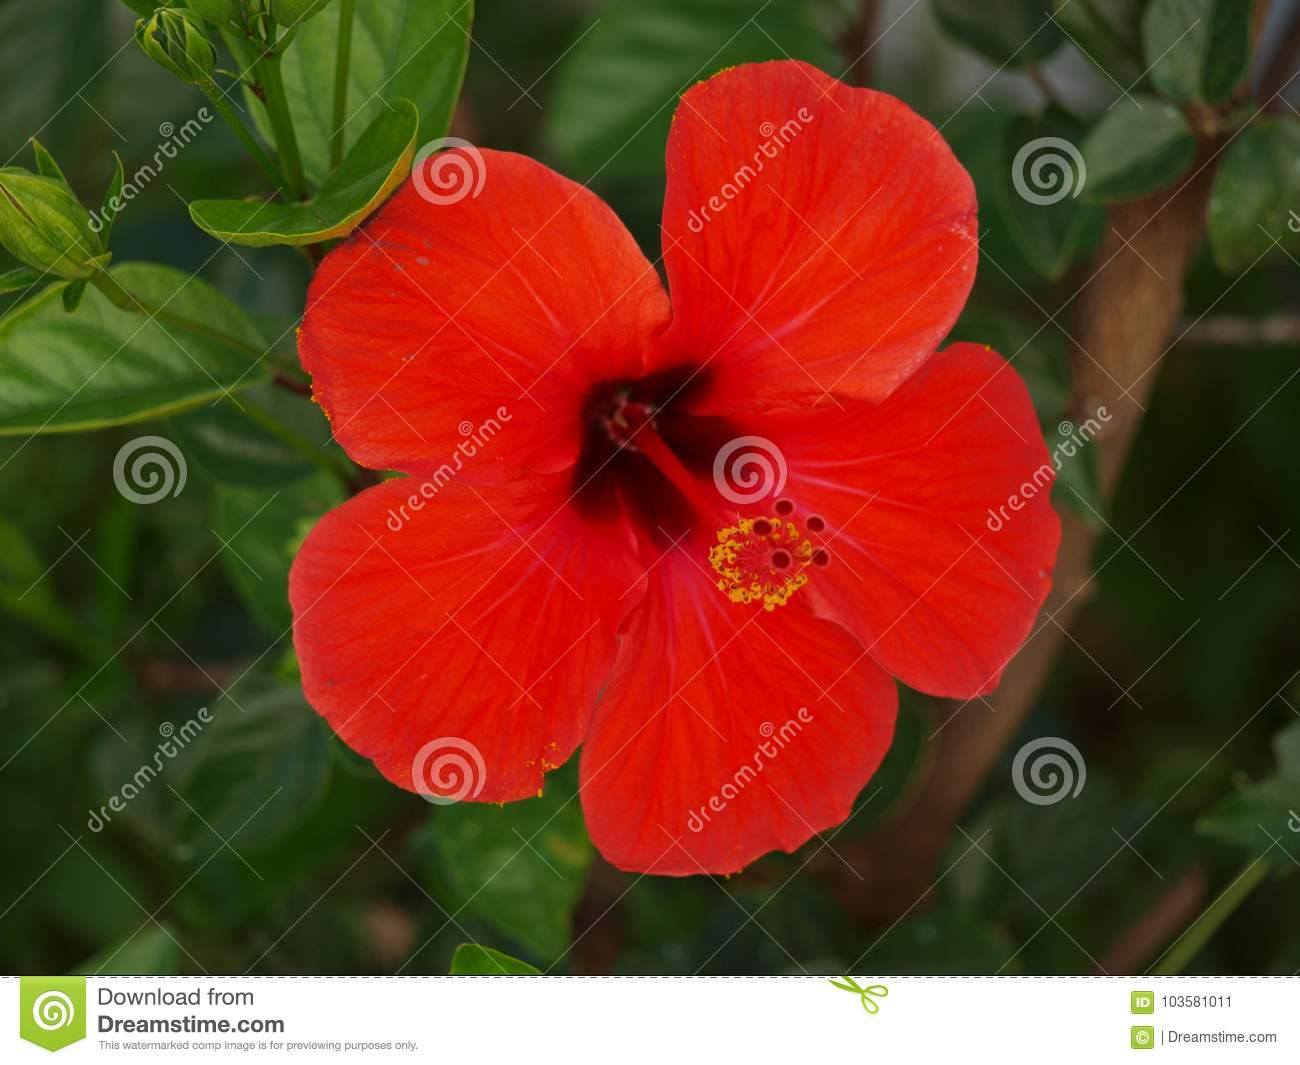 High Definition Of Open Red Flower Stock Image - Image of garden